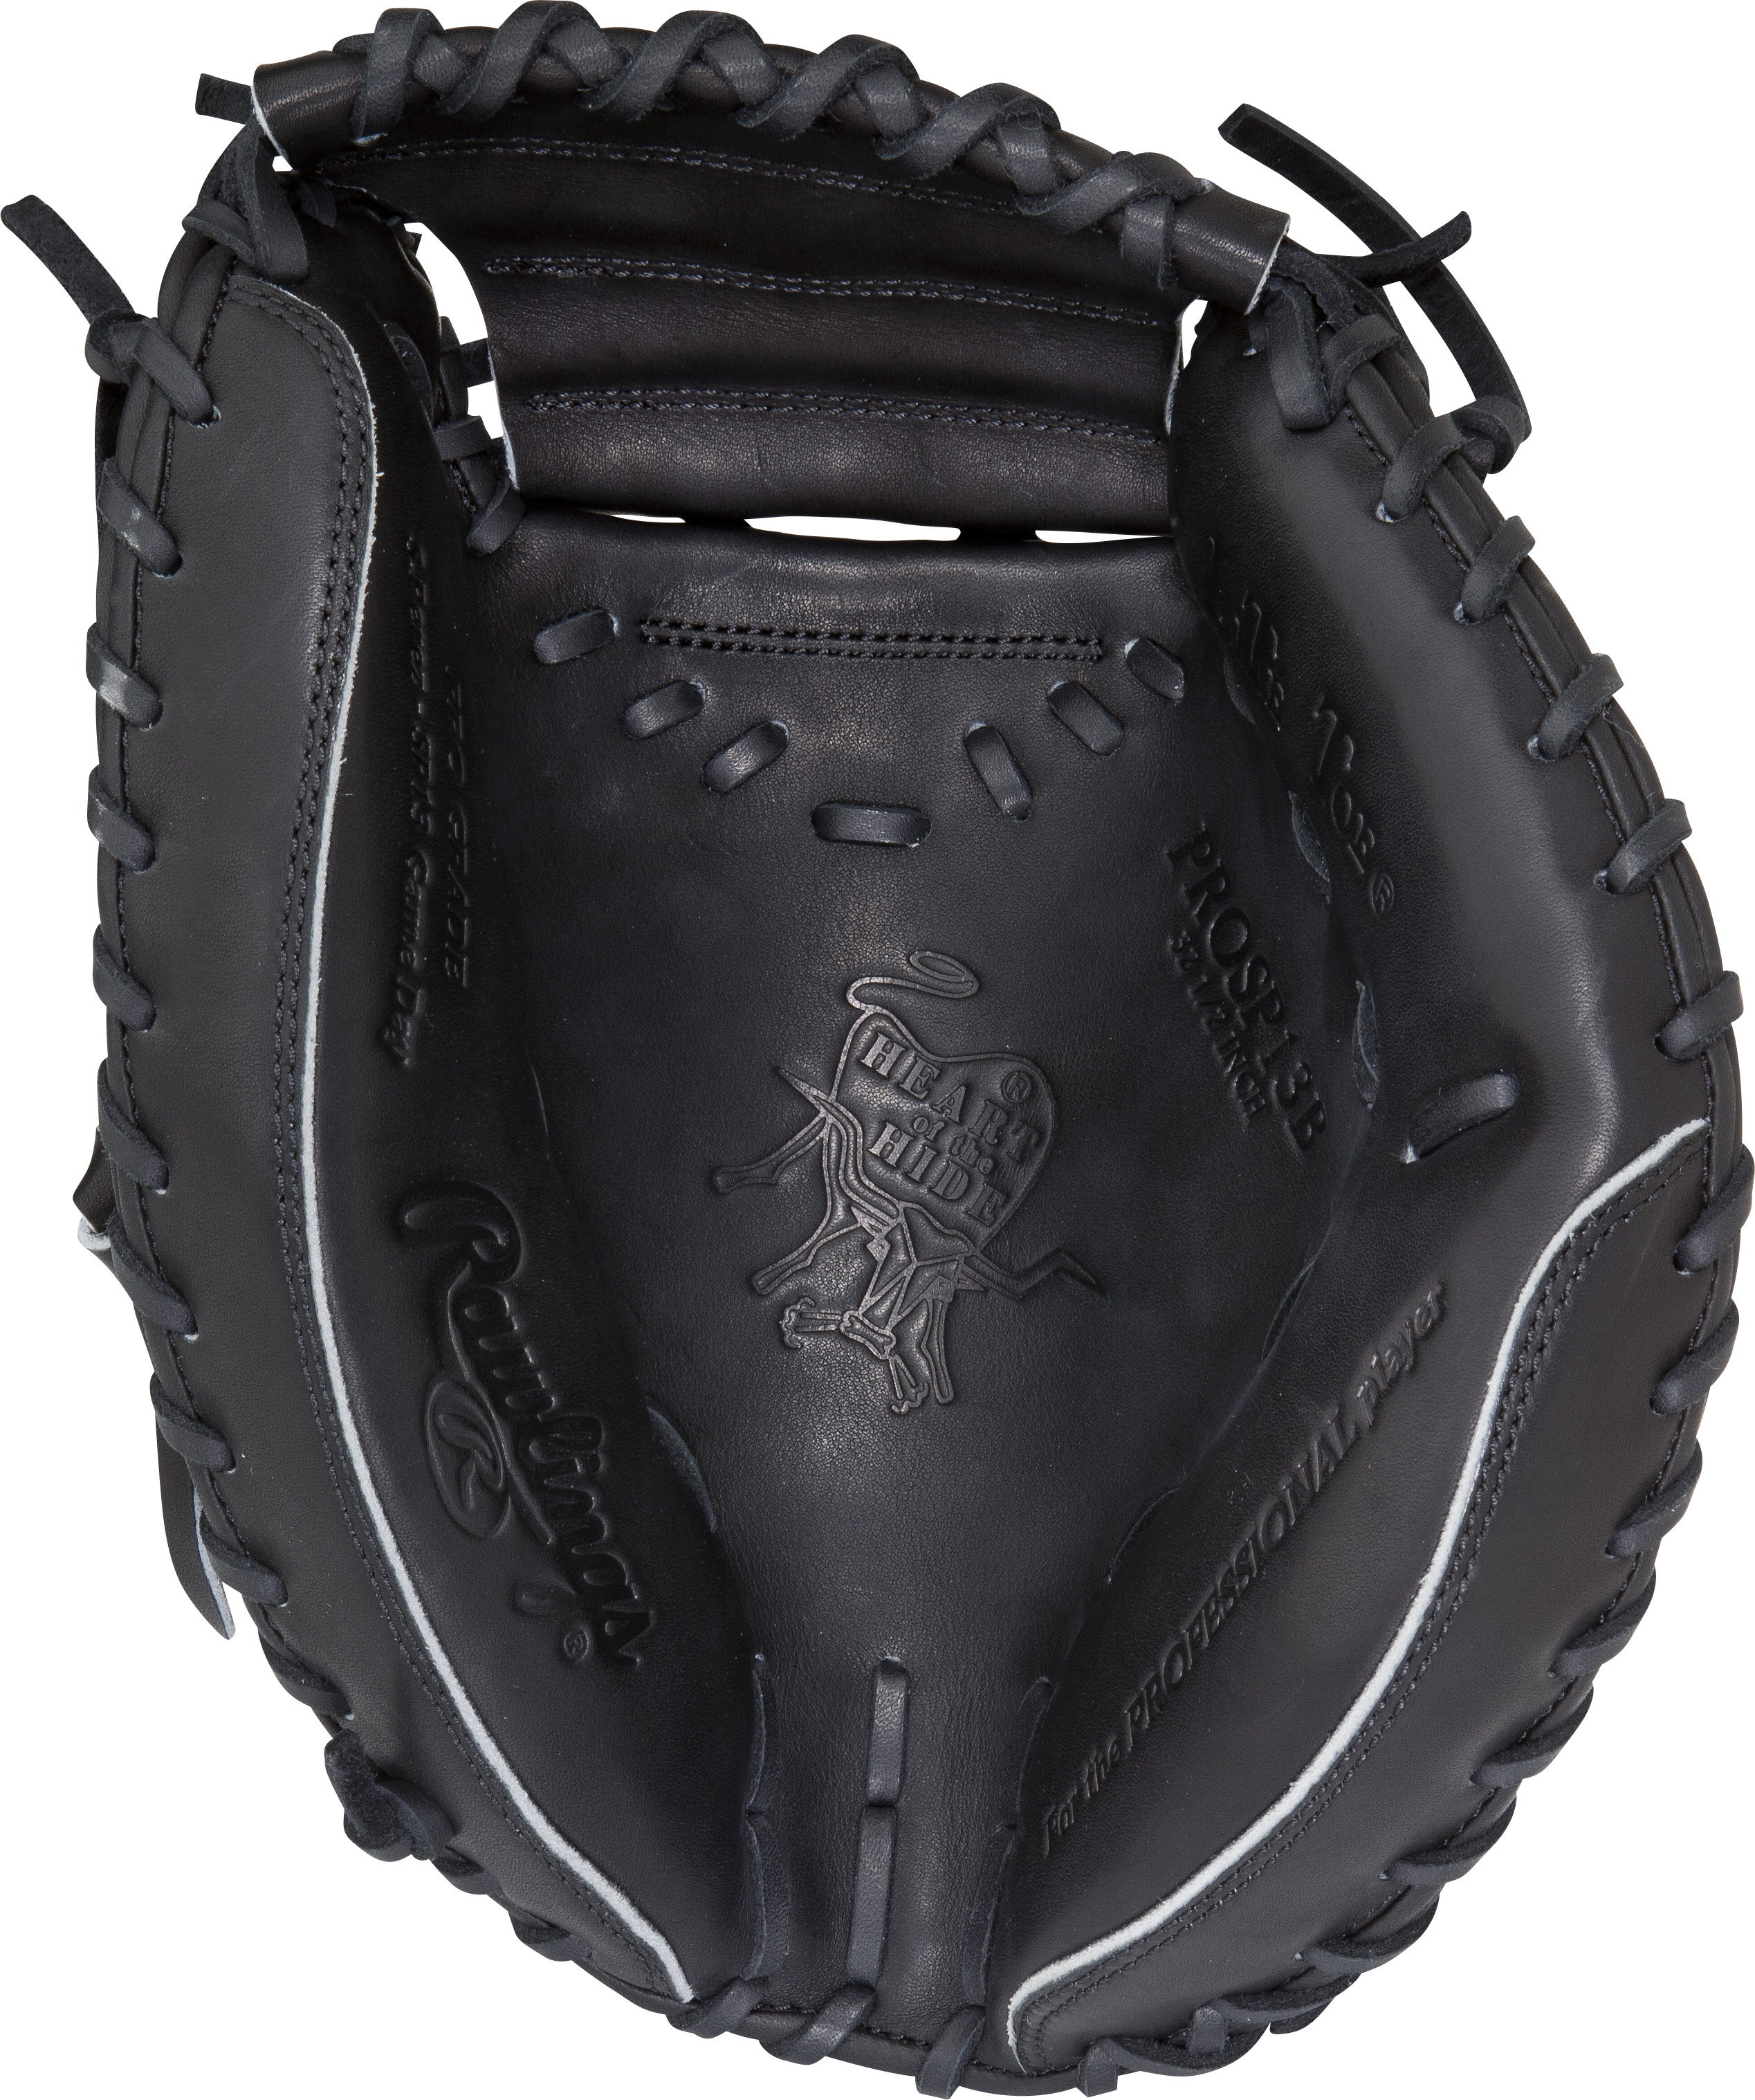 http://www.bestbatdeals.com/images/gloves/rawlings/PROSP13B_palm.jpg